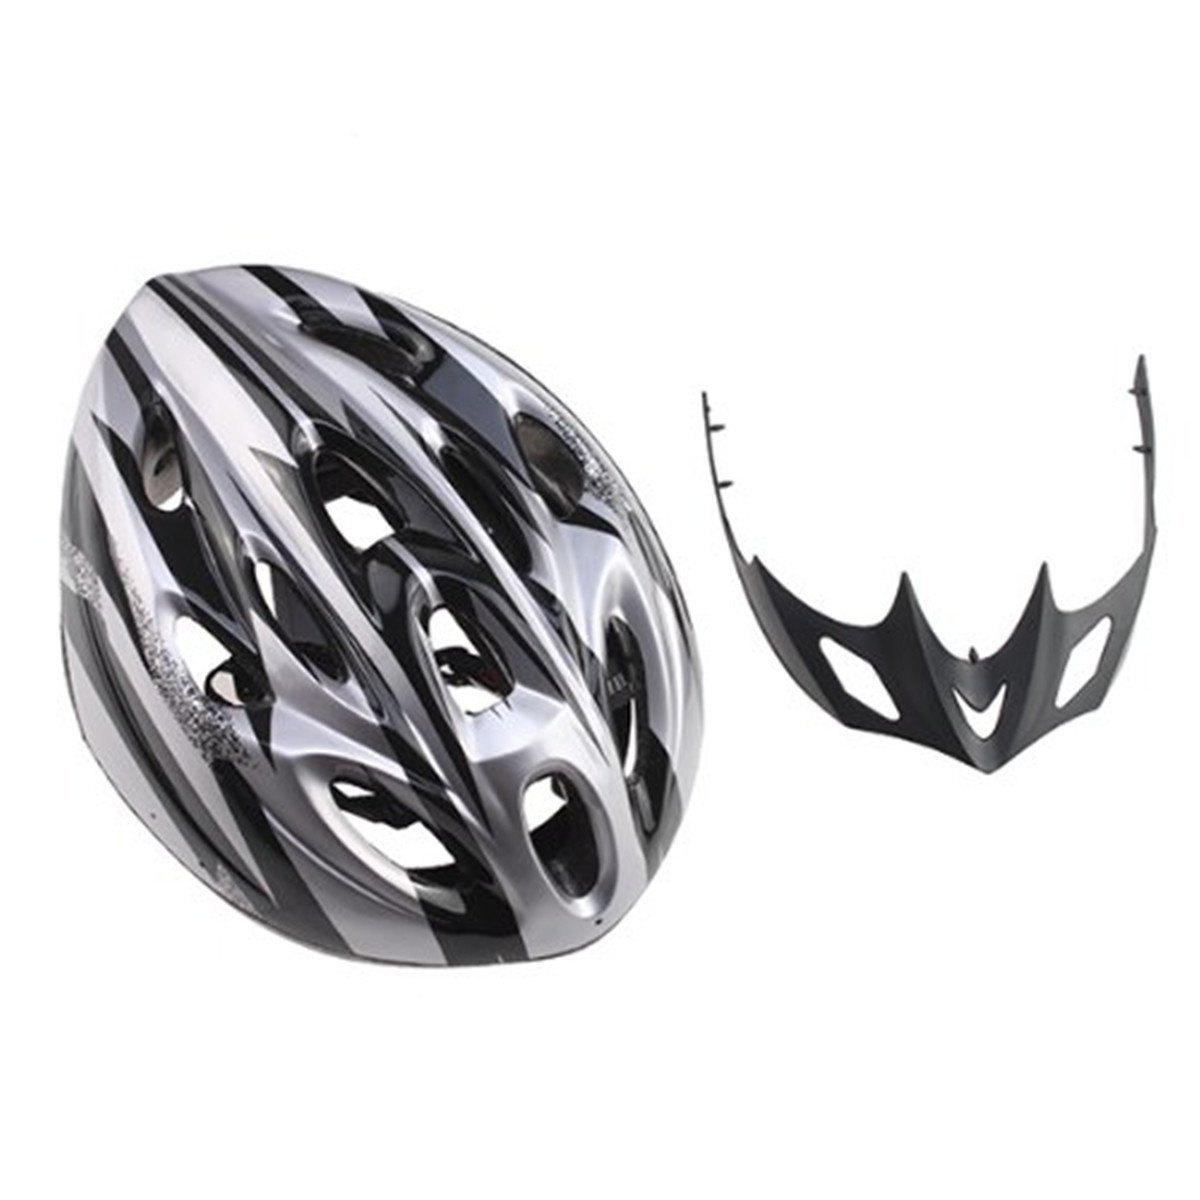 Silver ECYC Bicycle Helmets